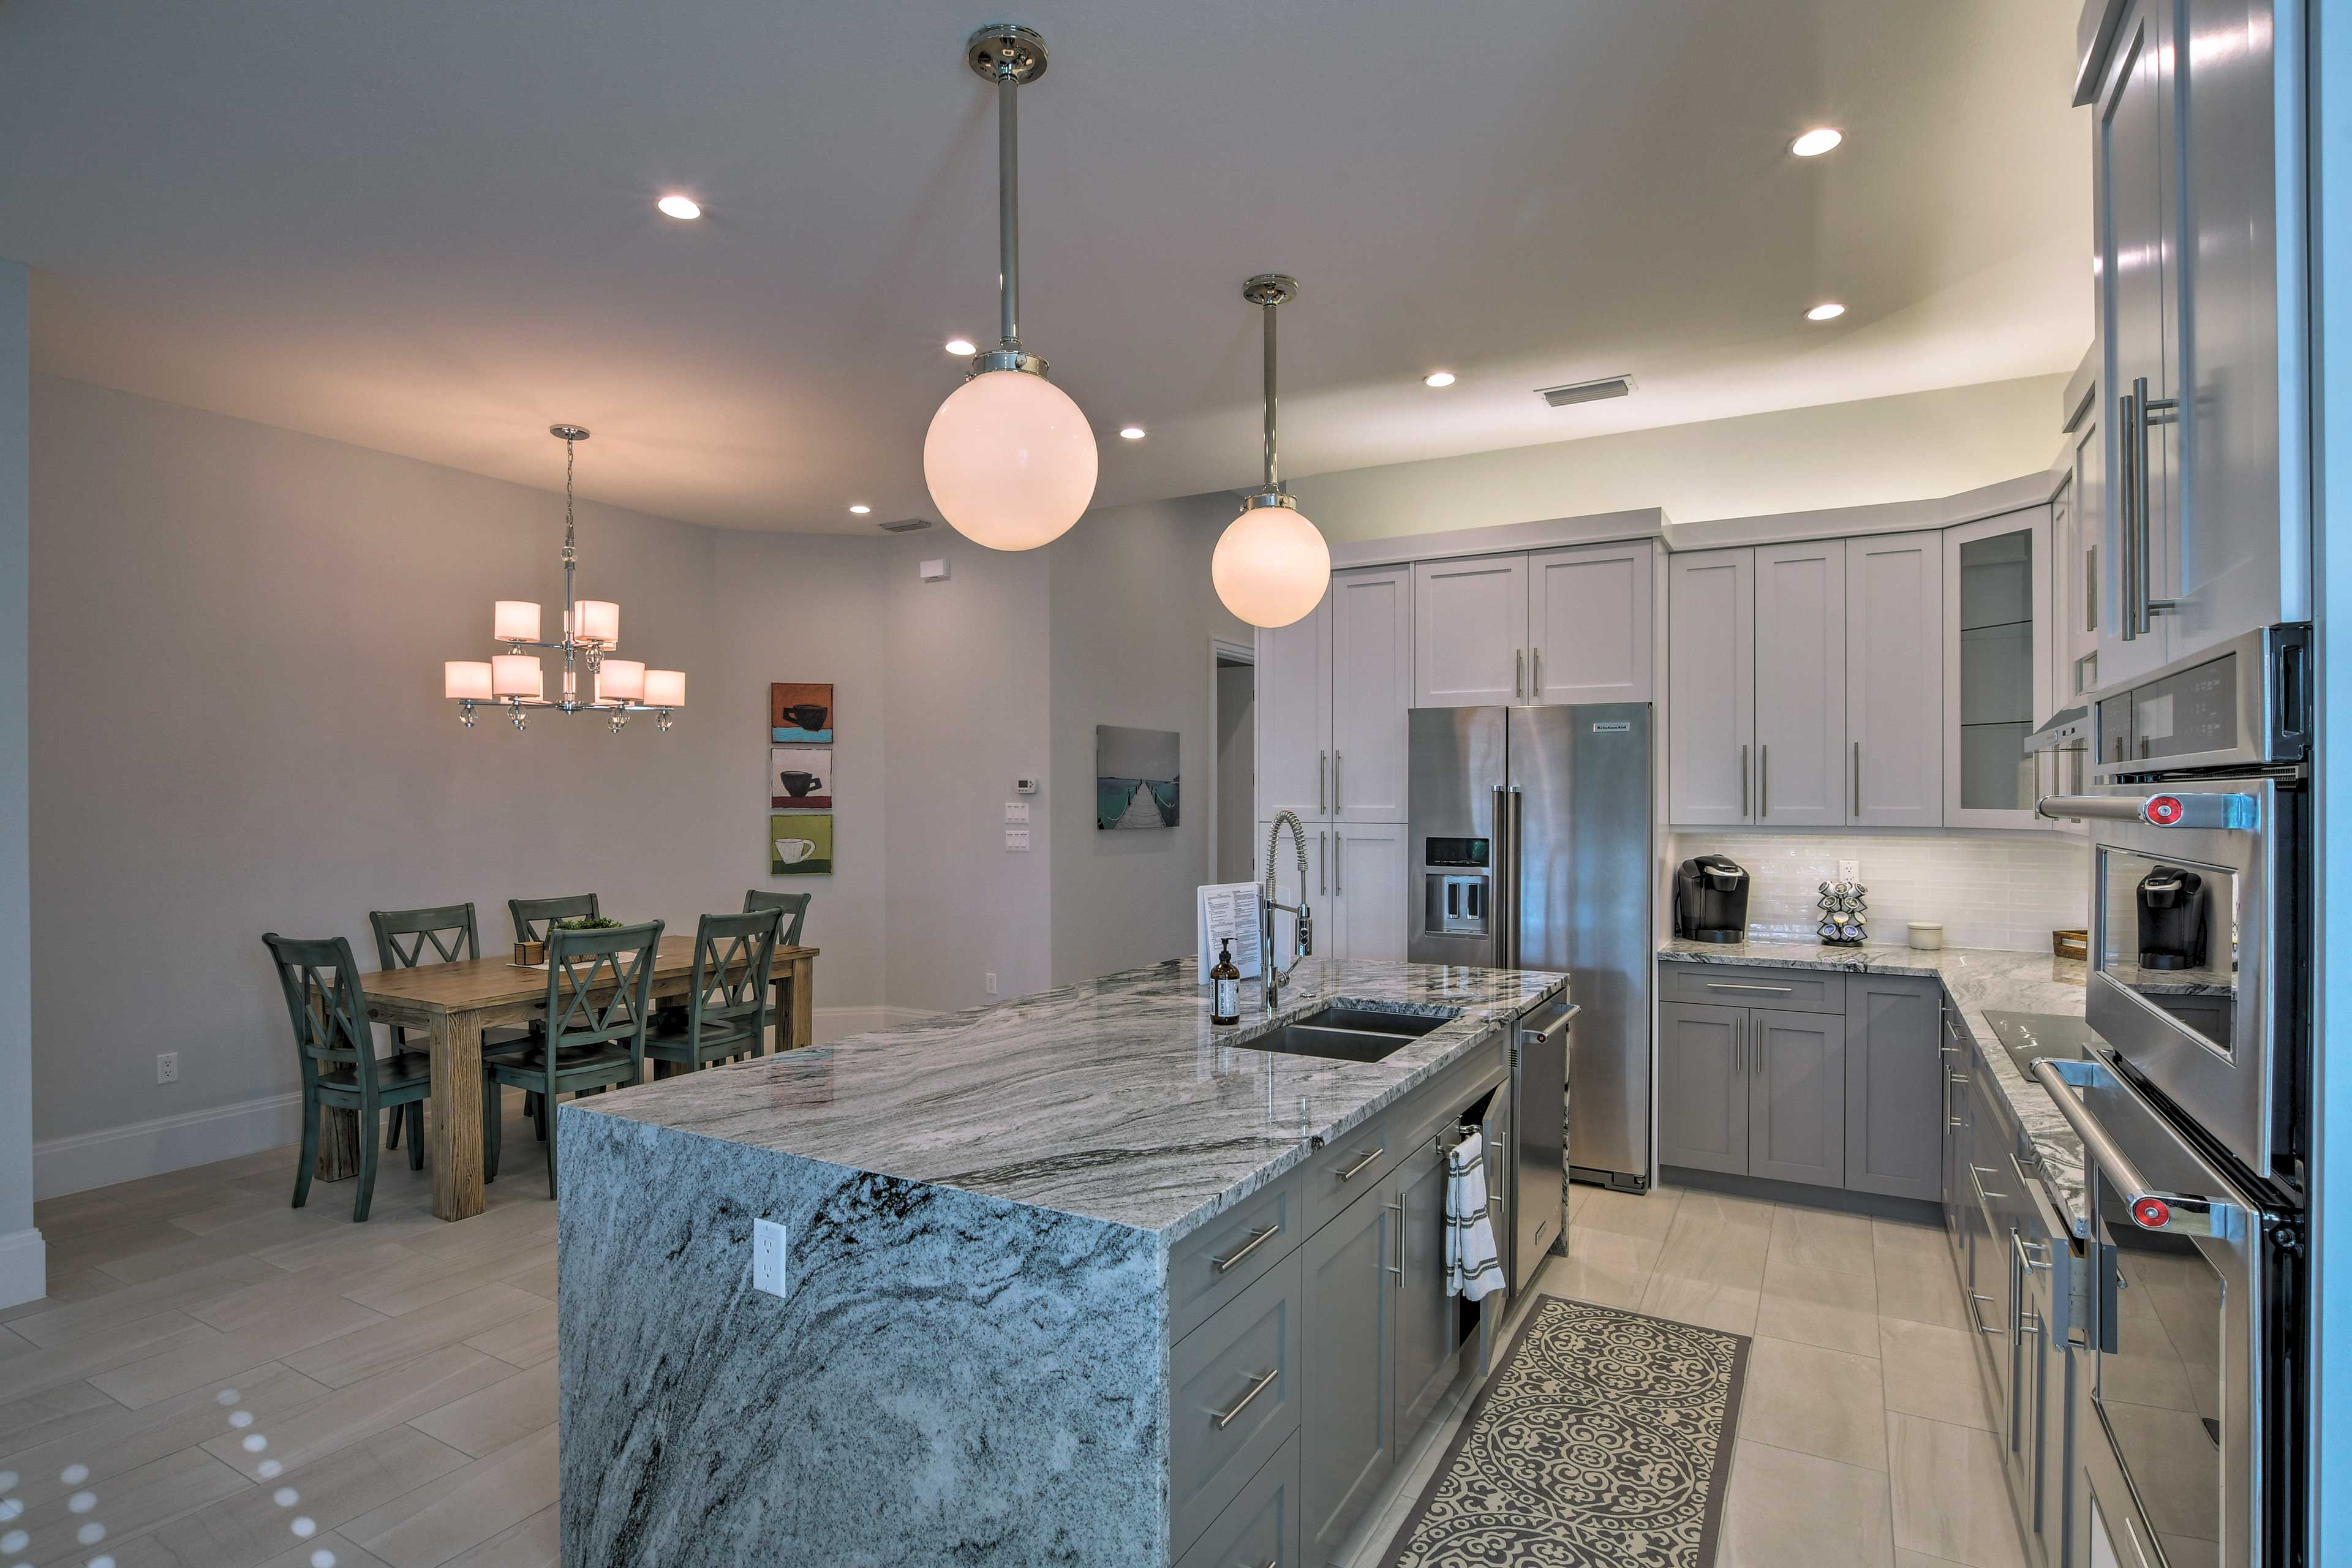 The kitchen features stainless steel appliances and a center island.